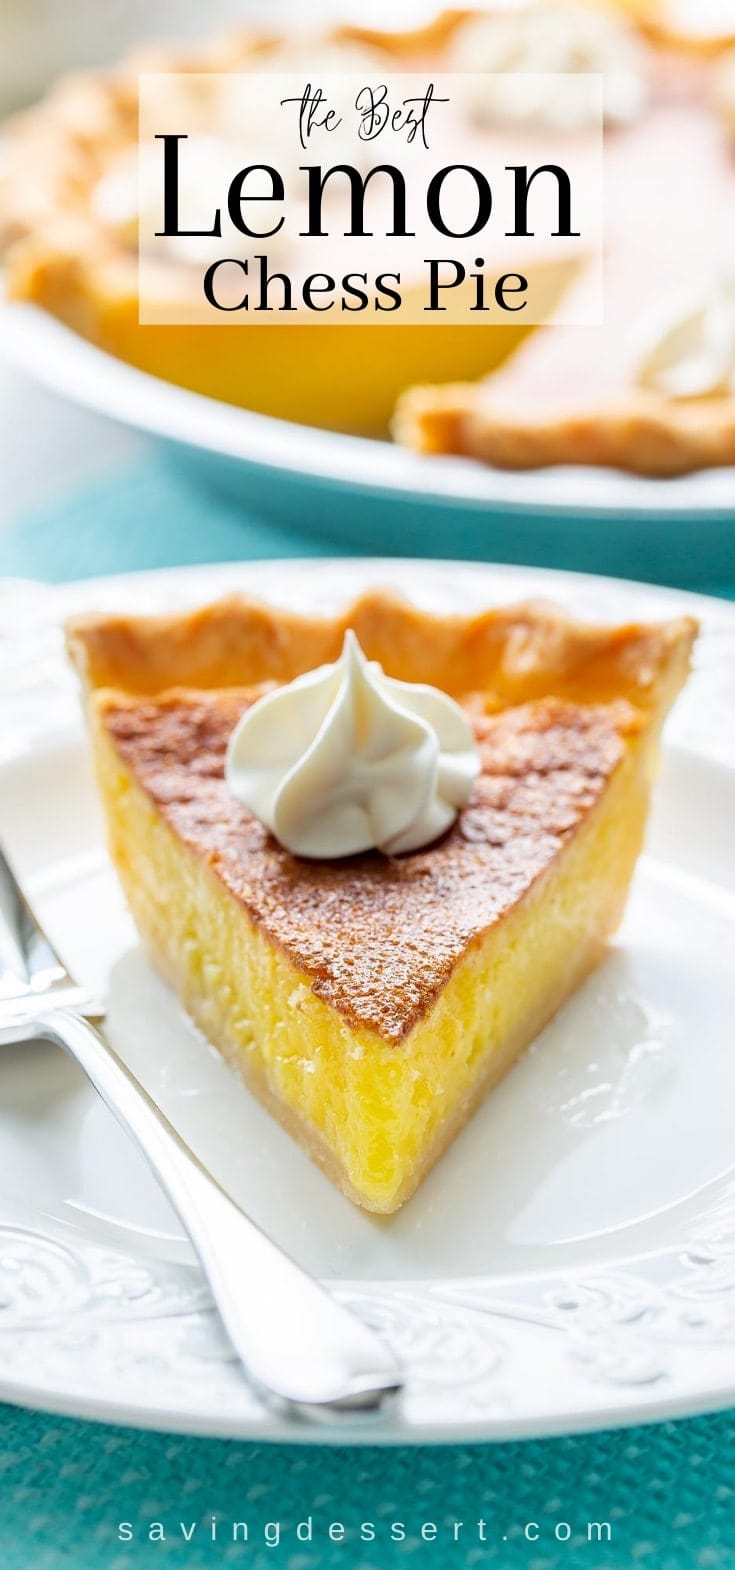 A slice of lemon chess pie on a plate topped with a swirl of whipped cream